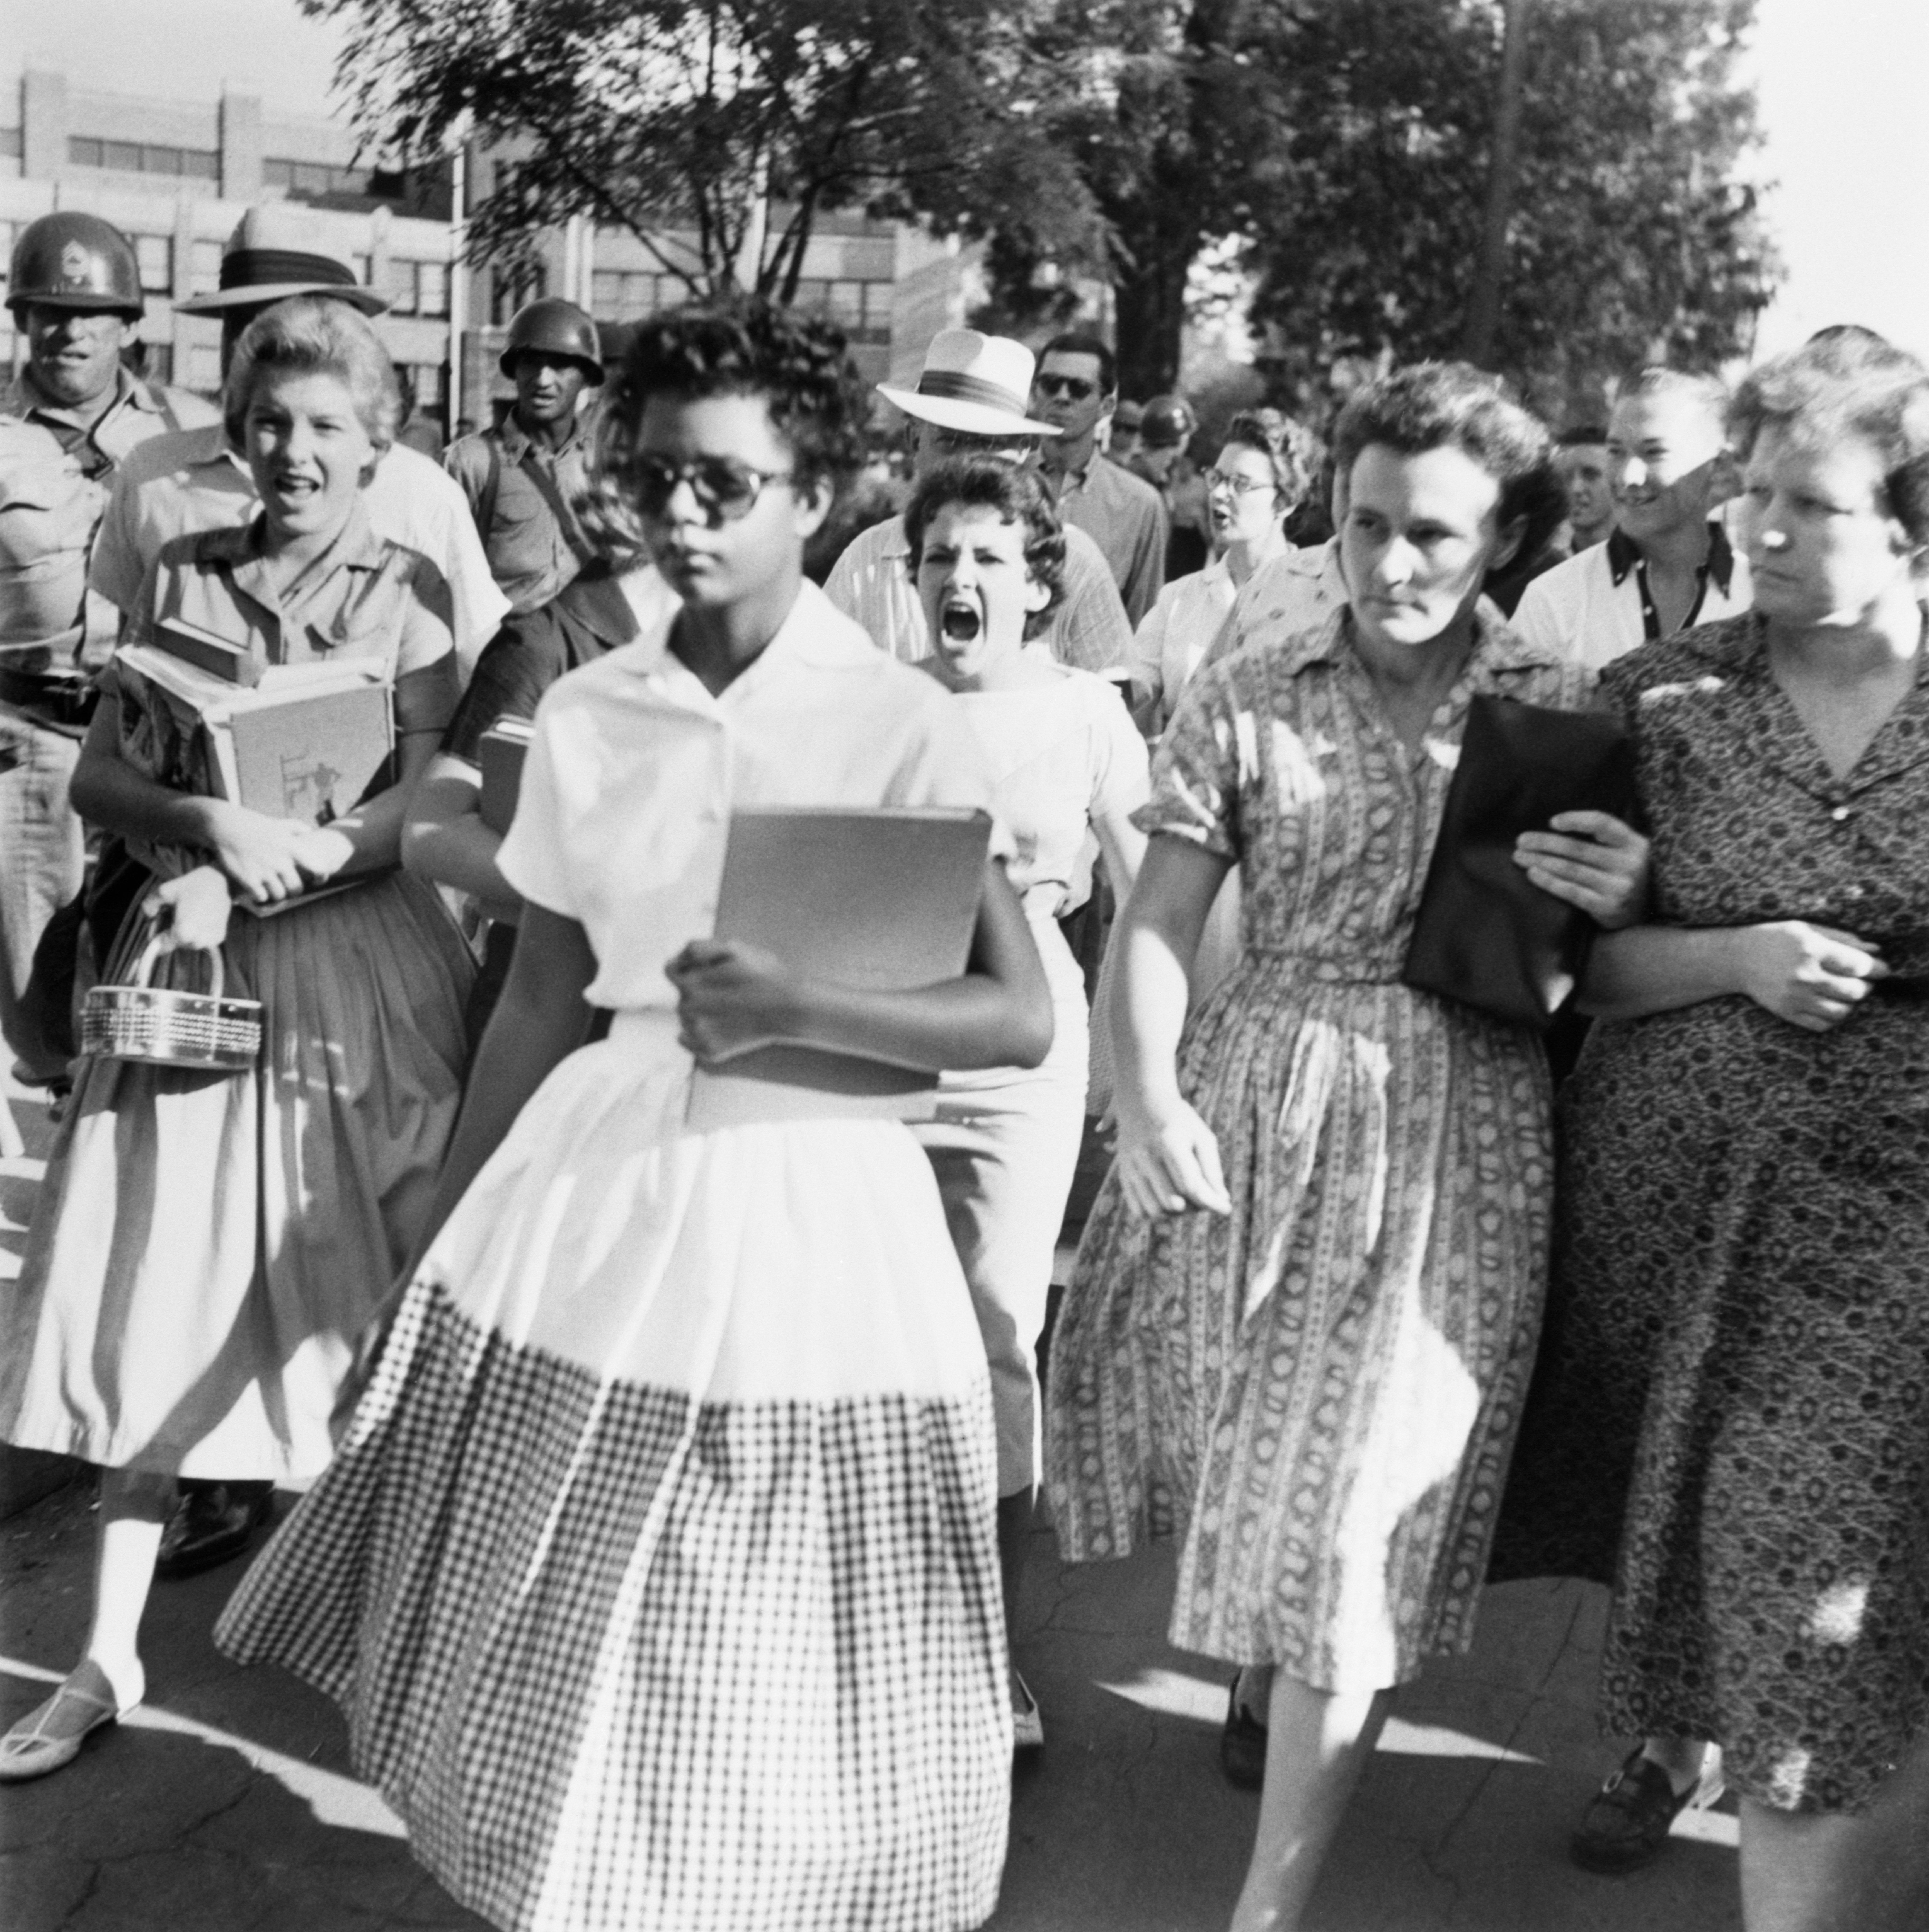 Elizabeth Eckford ignores the hostile screams and stares of fellow students on her first day of school. She was one of the nine negro students whose integration into Little Rock's Central High School was ordered by a Federal Court following legal action by NAACP.